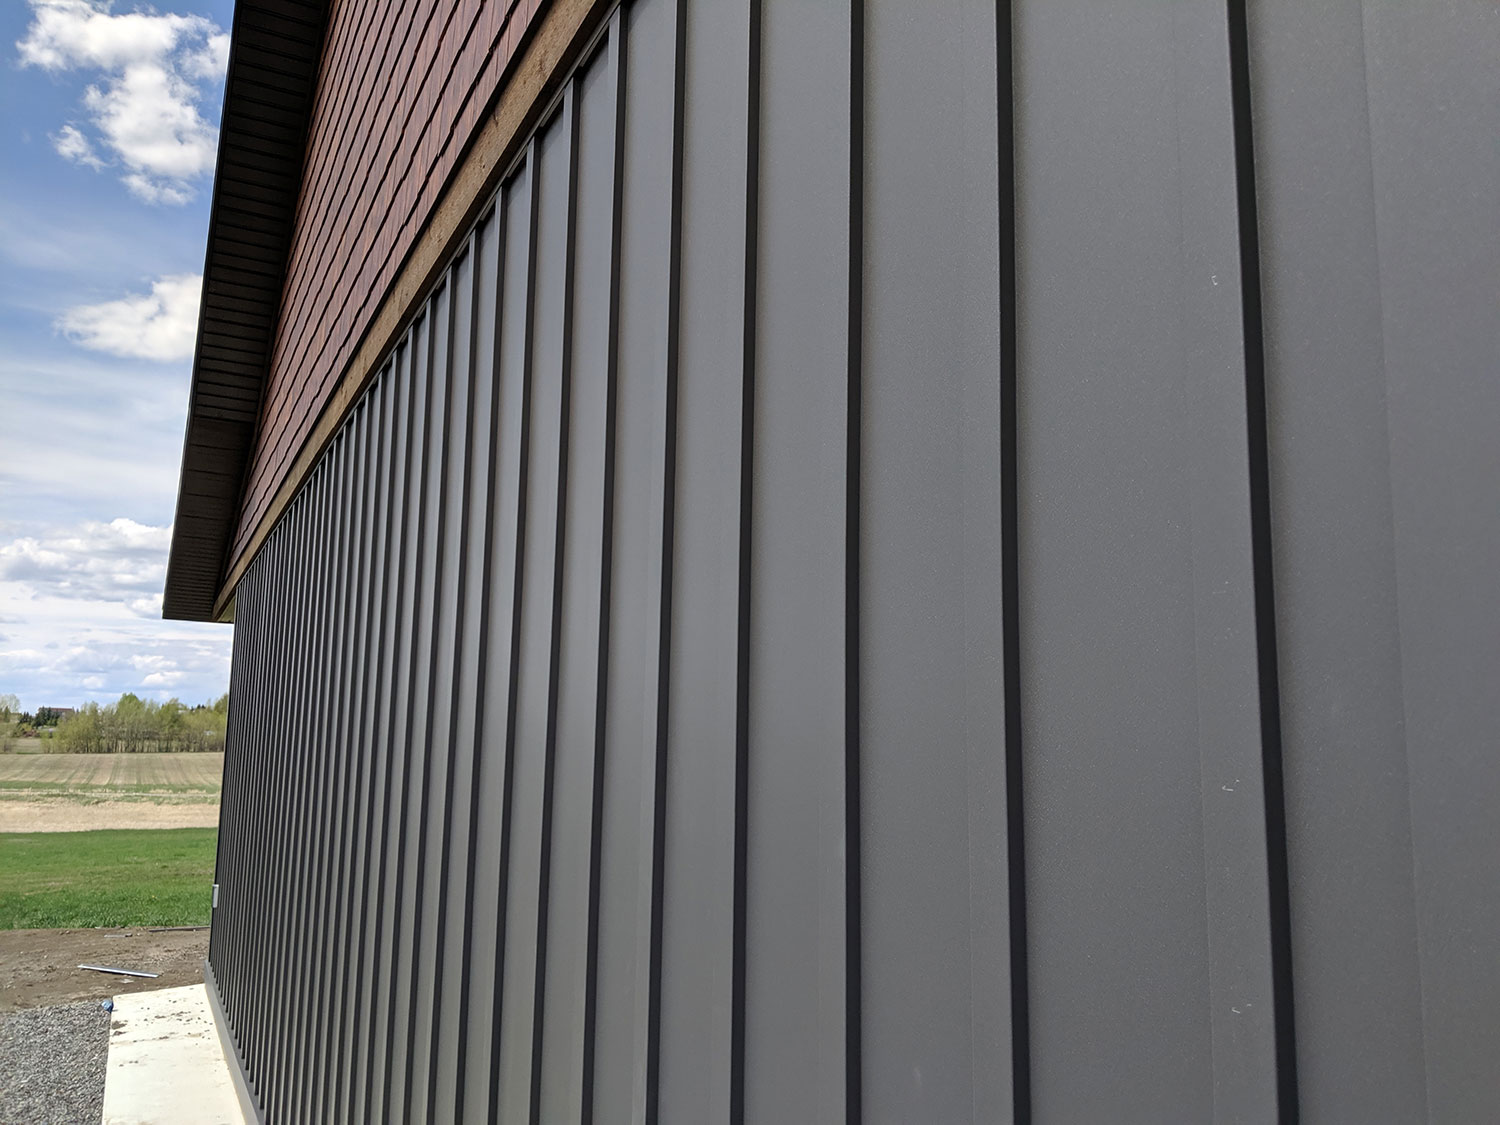 Residential Building with Custom Board and Batten Panels in Graphite FormaTouch Textured Steel